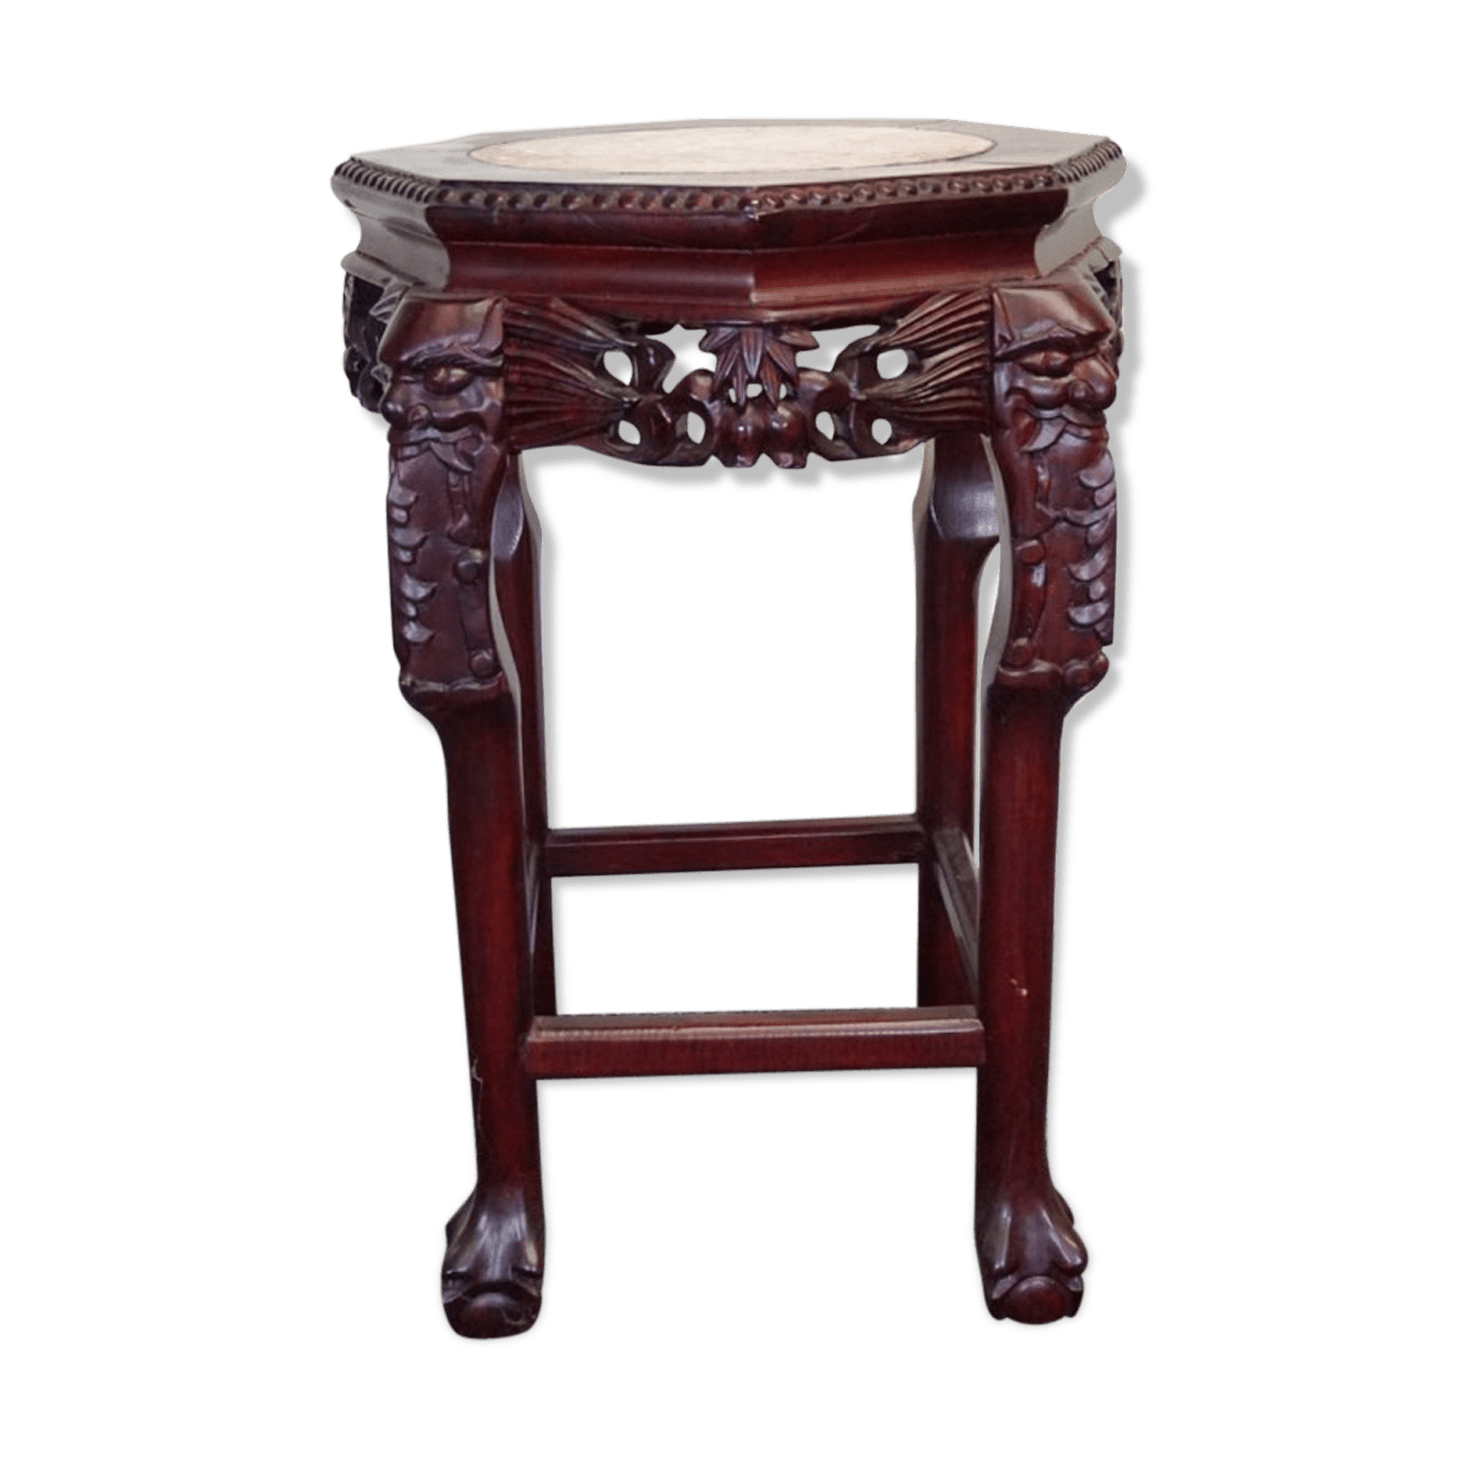 Table De Chevet Asiatique Table De Chevet Asiatique Table De Chevet Asiatique Teck